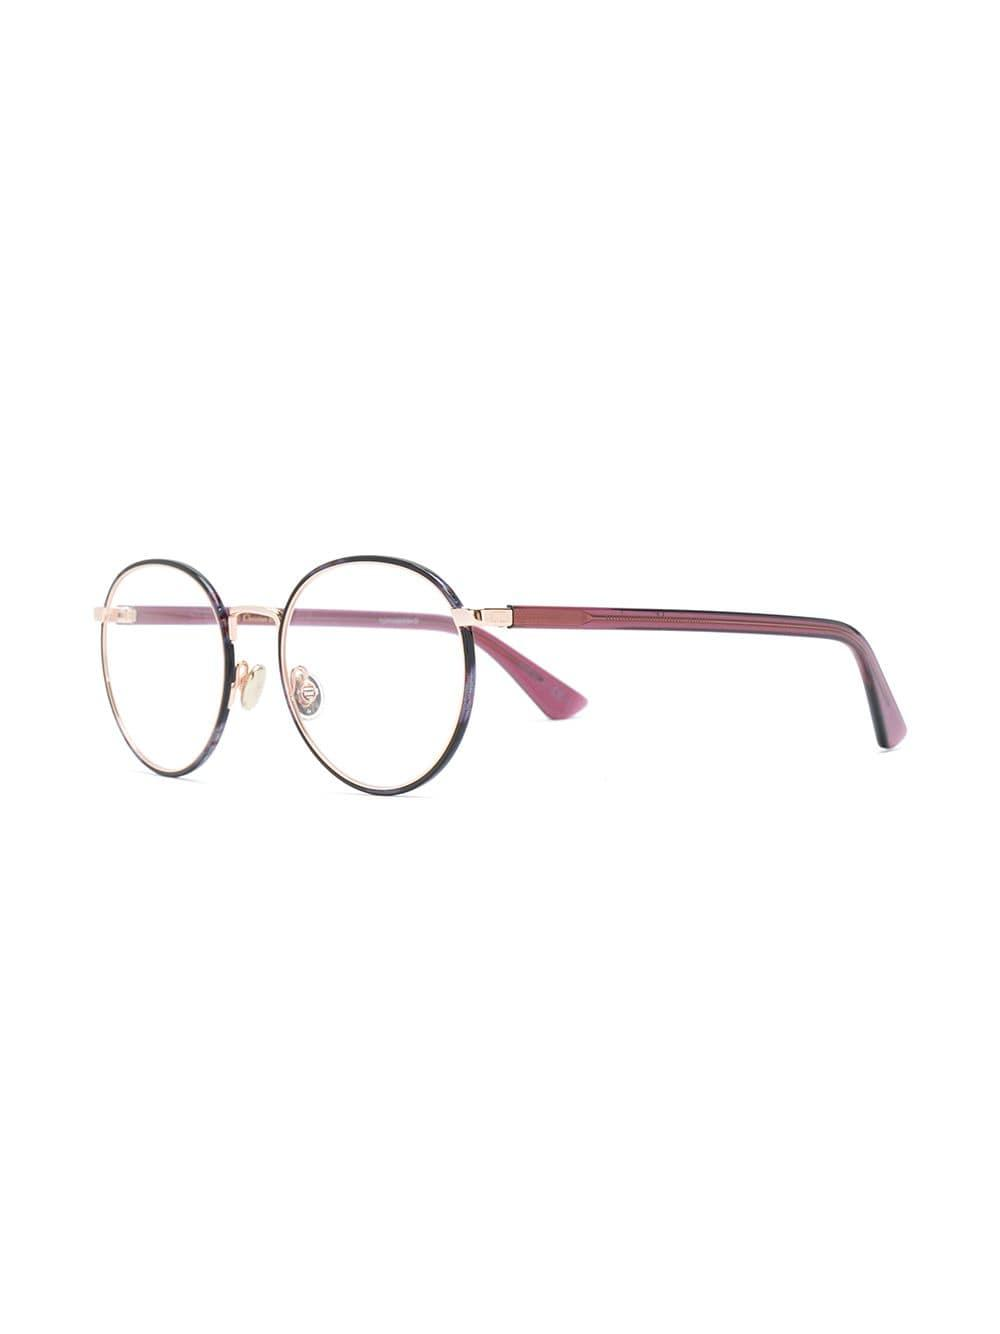 ee6def6462 Dior Essence Glasses in Pink - Lyst